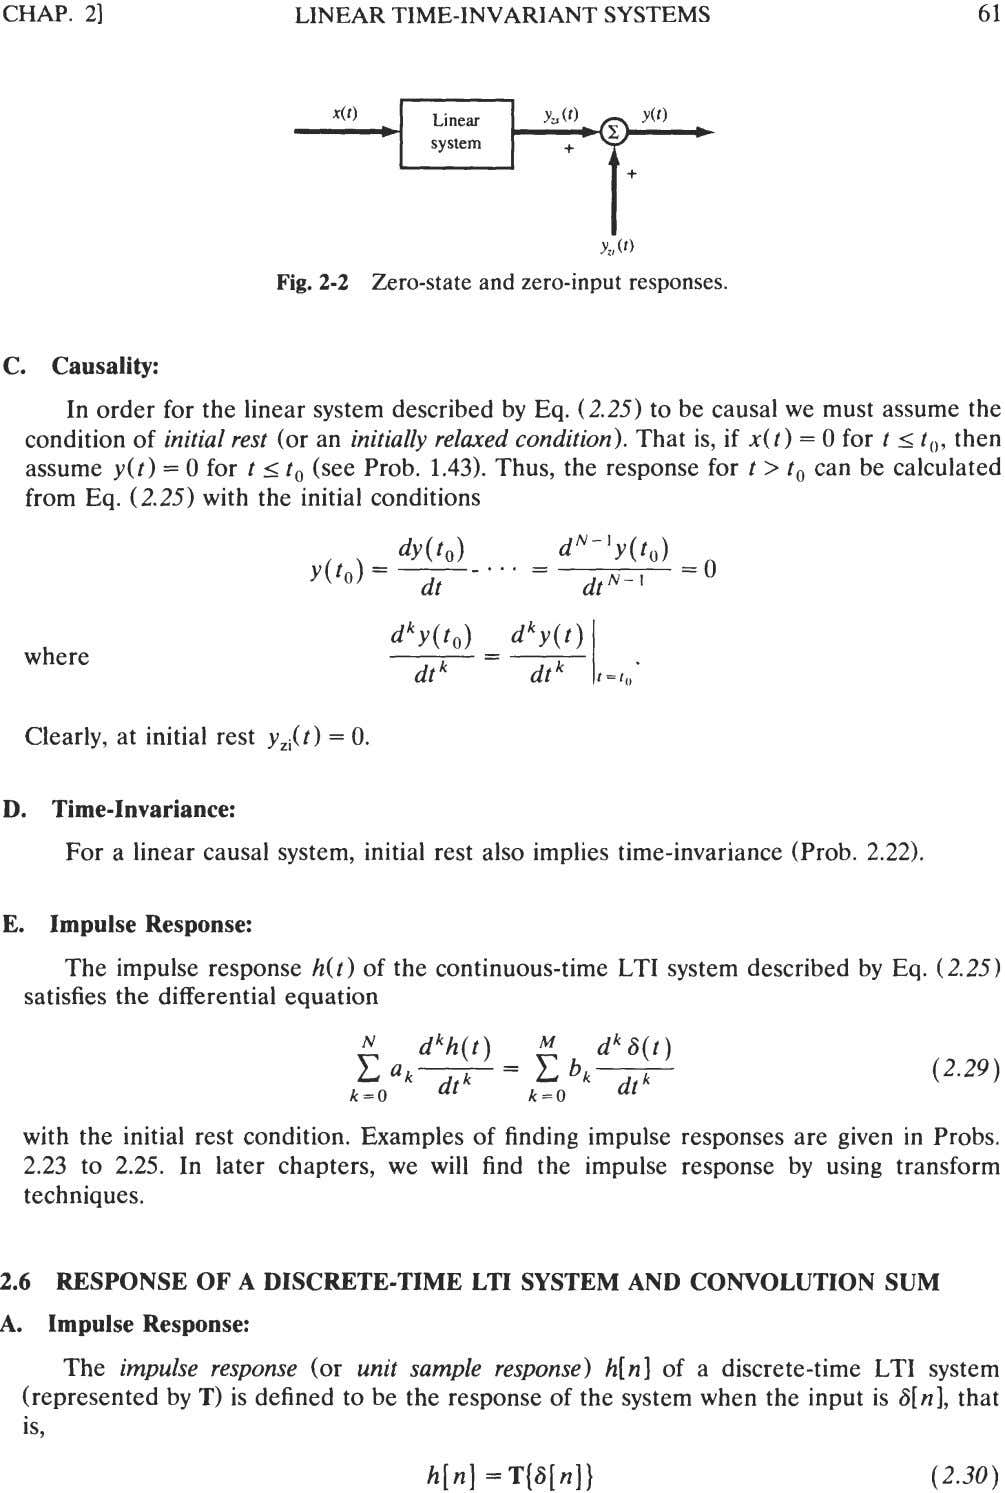 CHAP. 21 LINEAR TIME-INVARIANT SYSTEMS Y,(O Fig. 2-2 Zero-state and zero-input responses. C. Causality: In